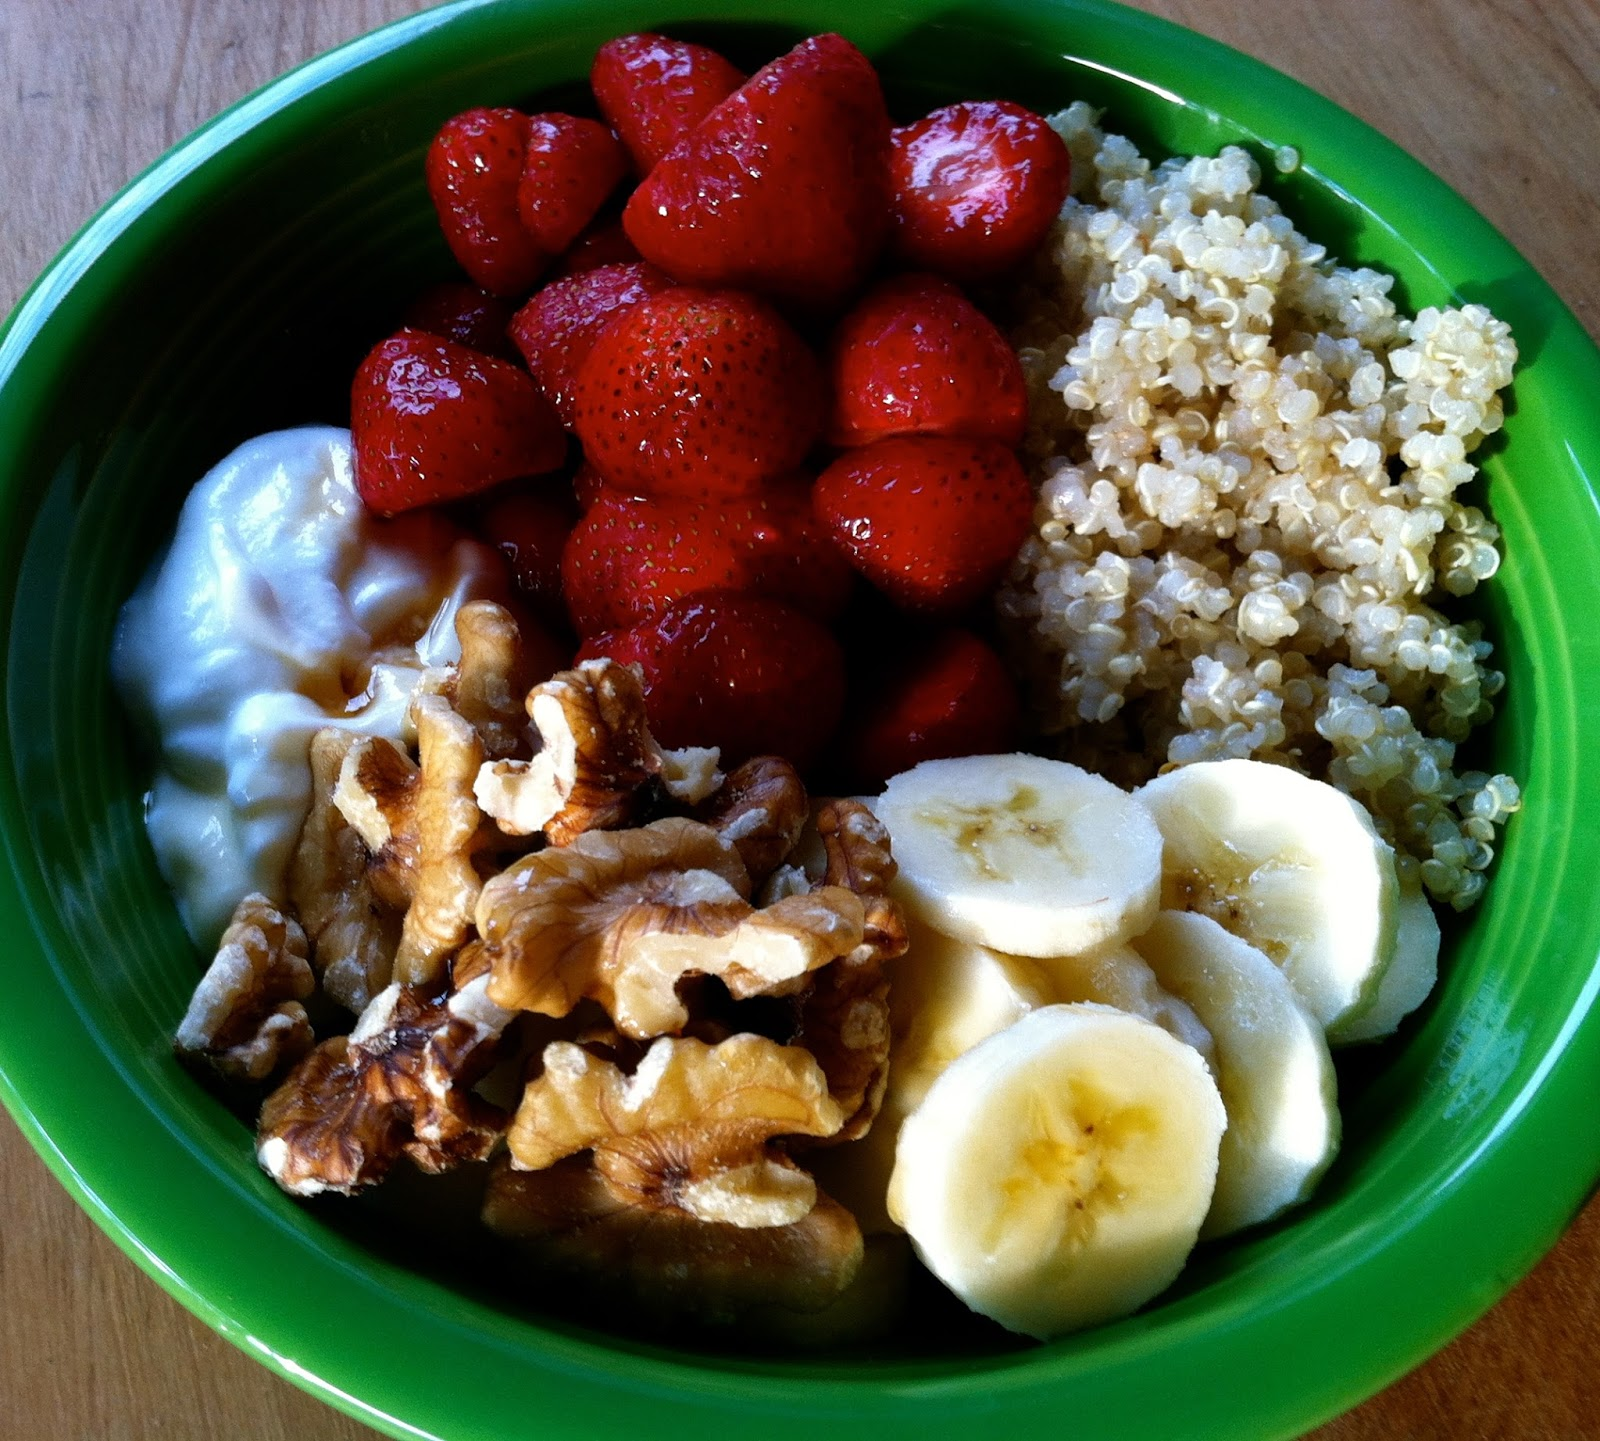 Husband Tested Recipes From Alice's Kitchen: Quinoa Breakfast Bowl